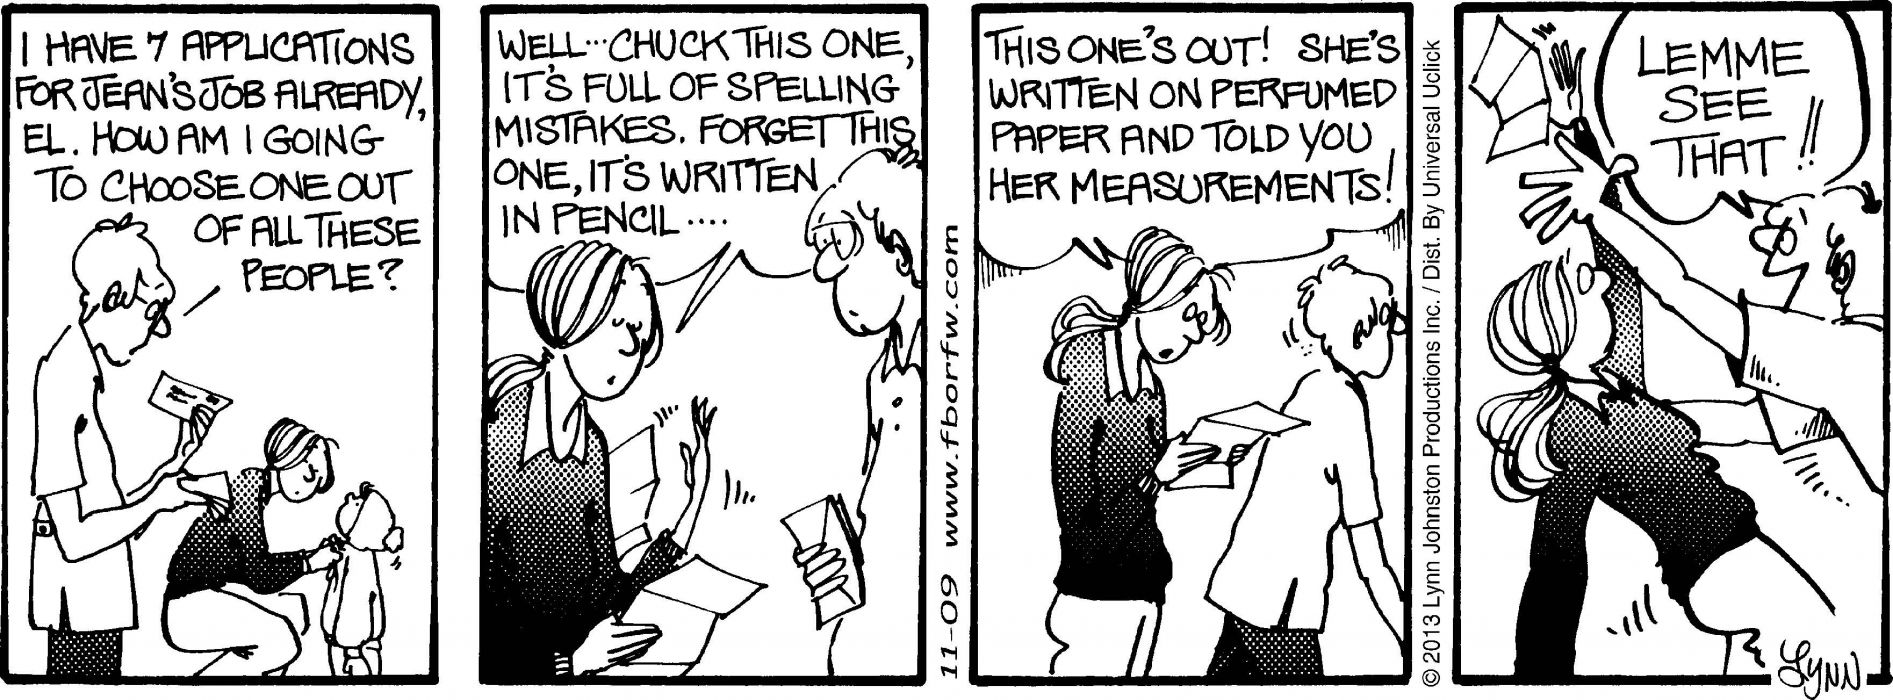 FOR-BETTER-OR-WORSE comicstrip comics funny humor better worse (51) wallpaper